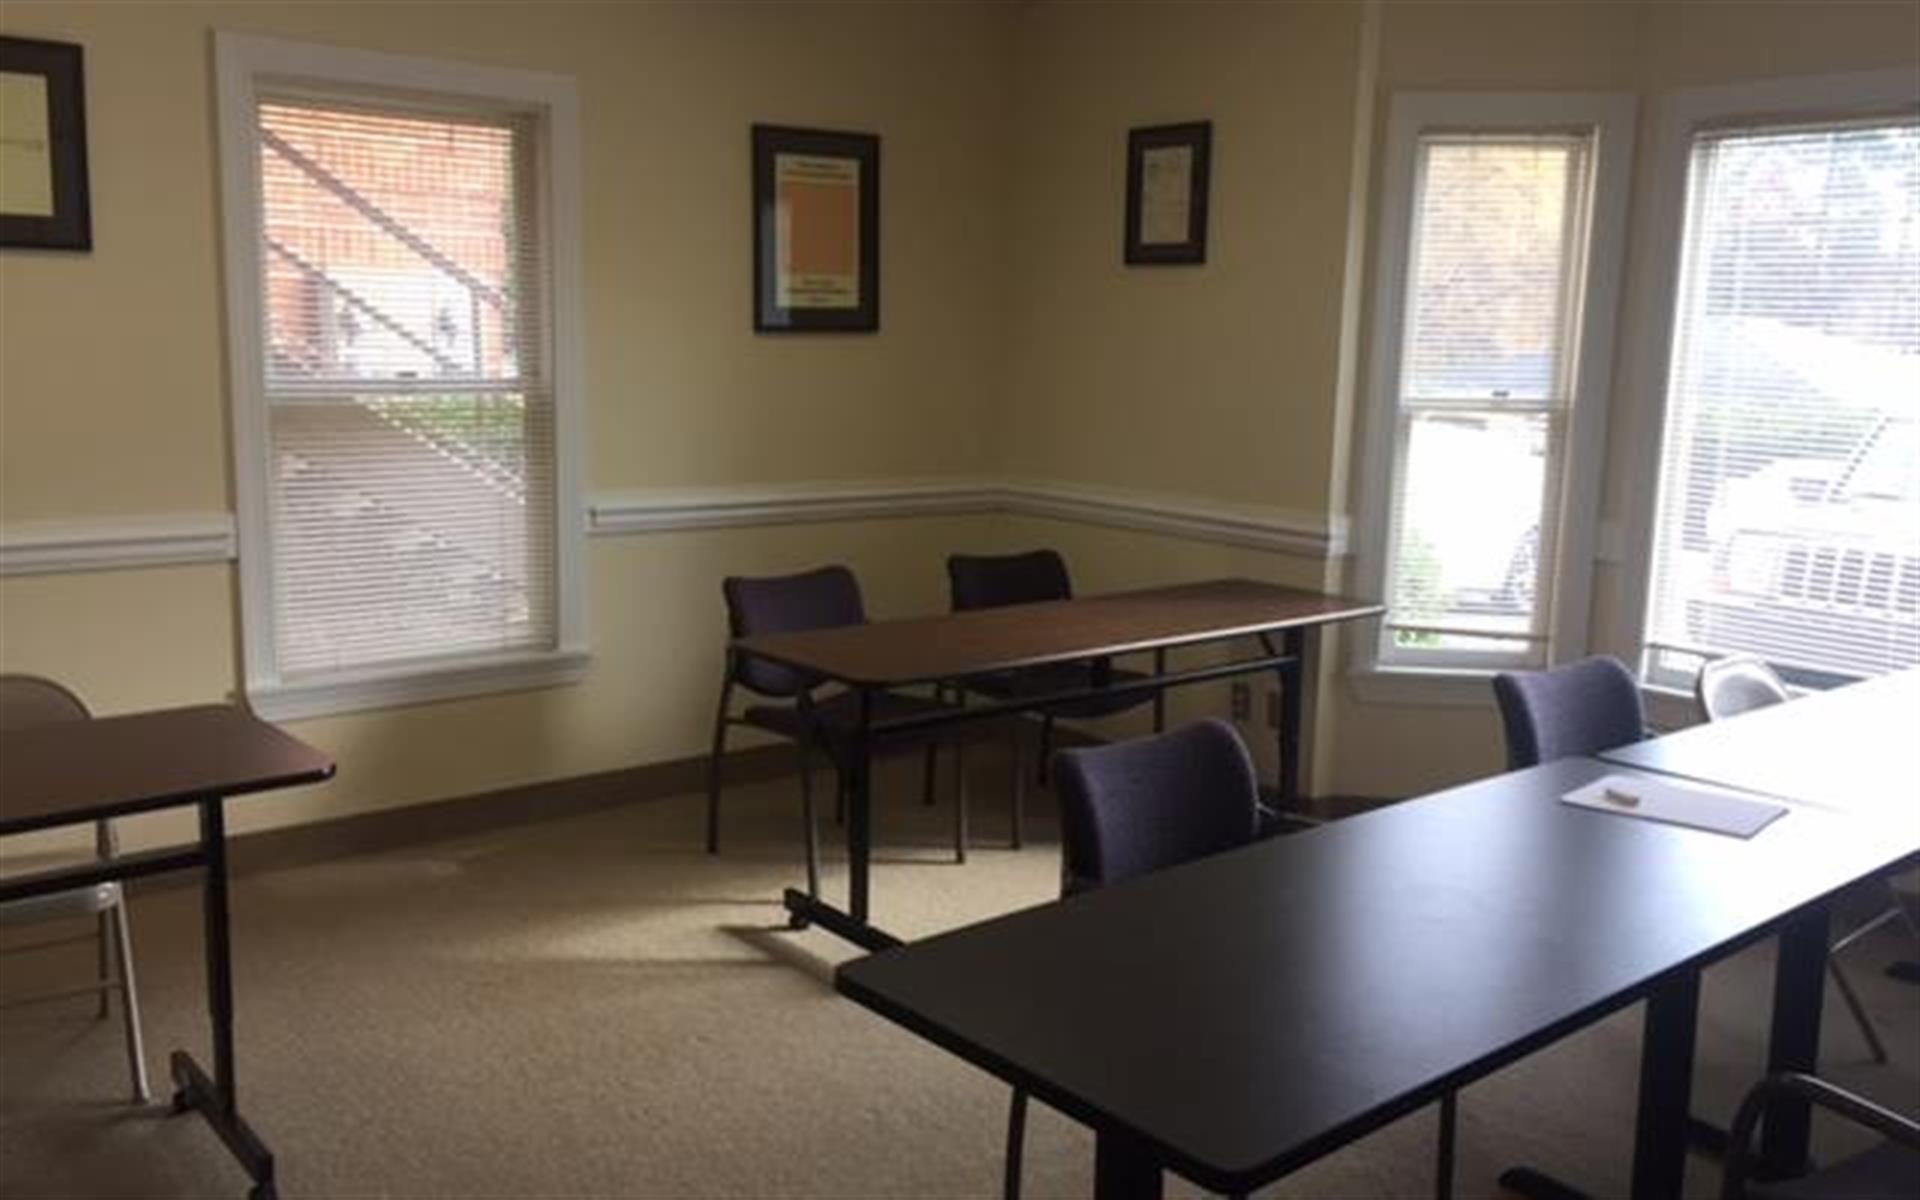 Mindspire Tutoring and Test Prep - Meeting Room 1